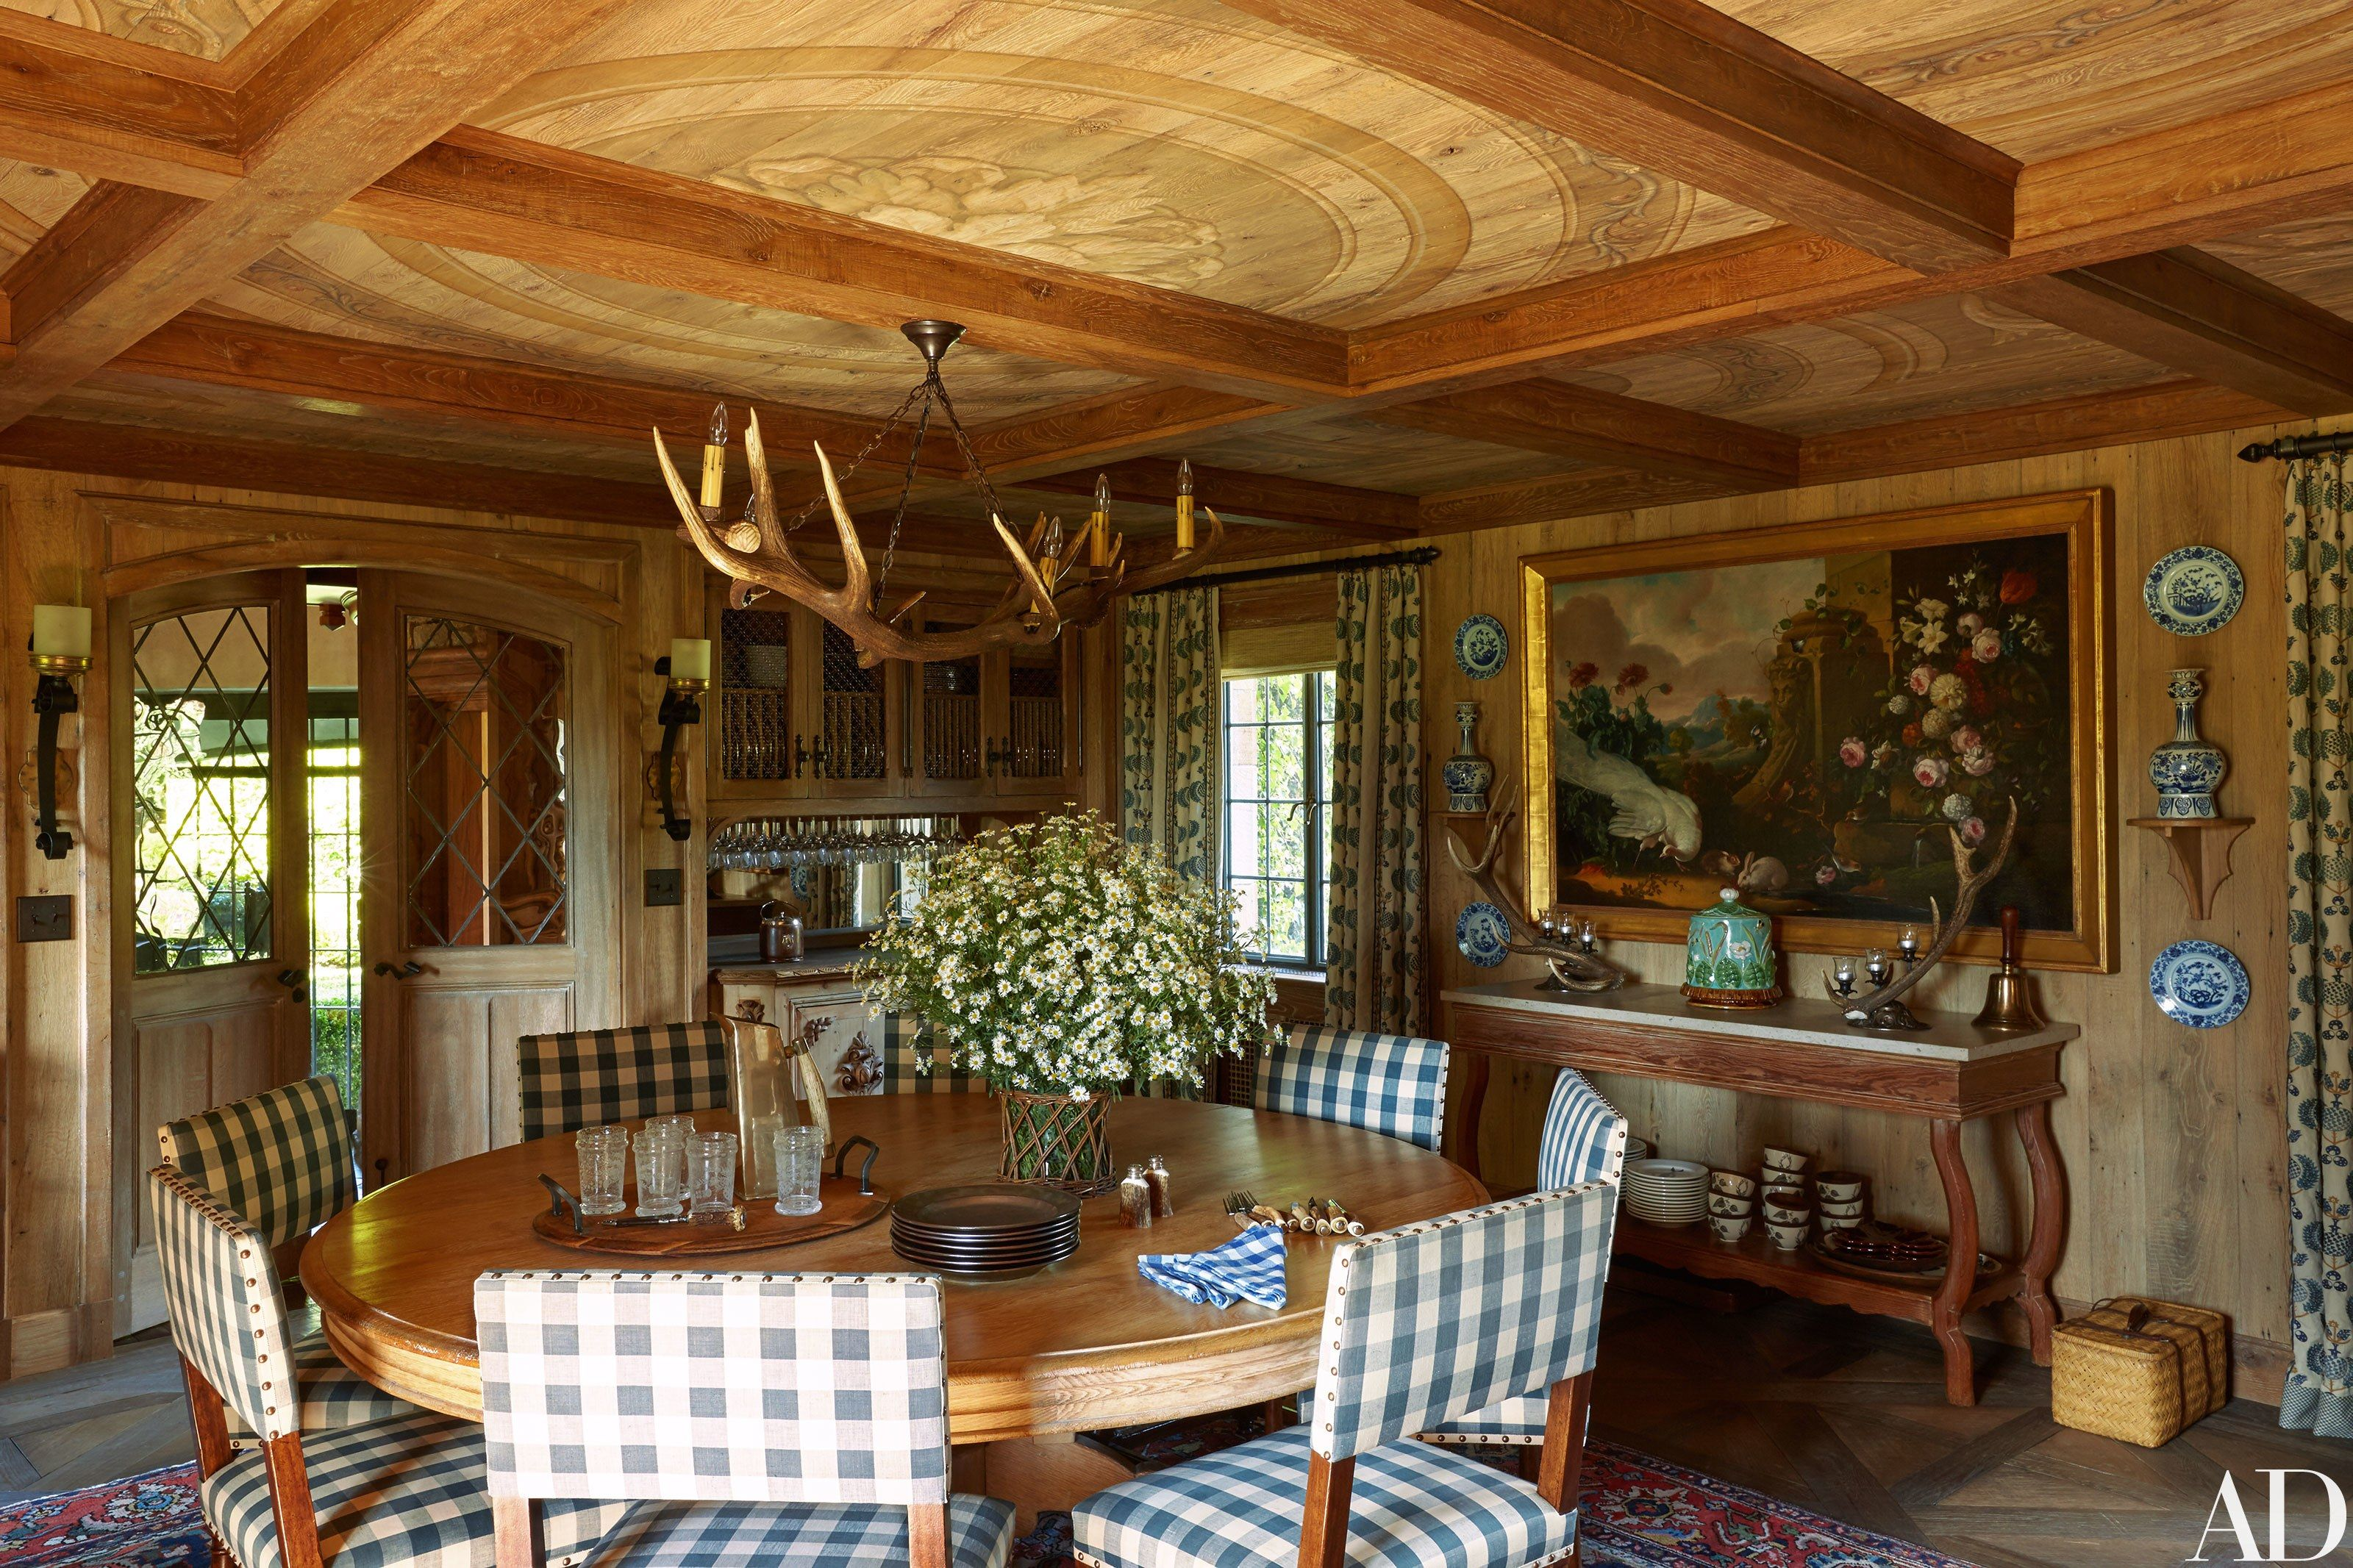 Inside Tommy and Dee Hilfiger's Ivy-Covered Connecticut ... on ralph lauren furniture, michael kors furniture, pierre cardin furniture, dior furniture,